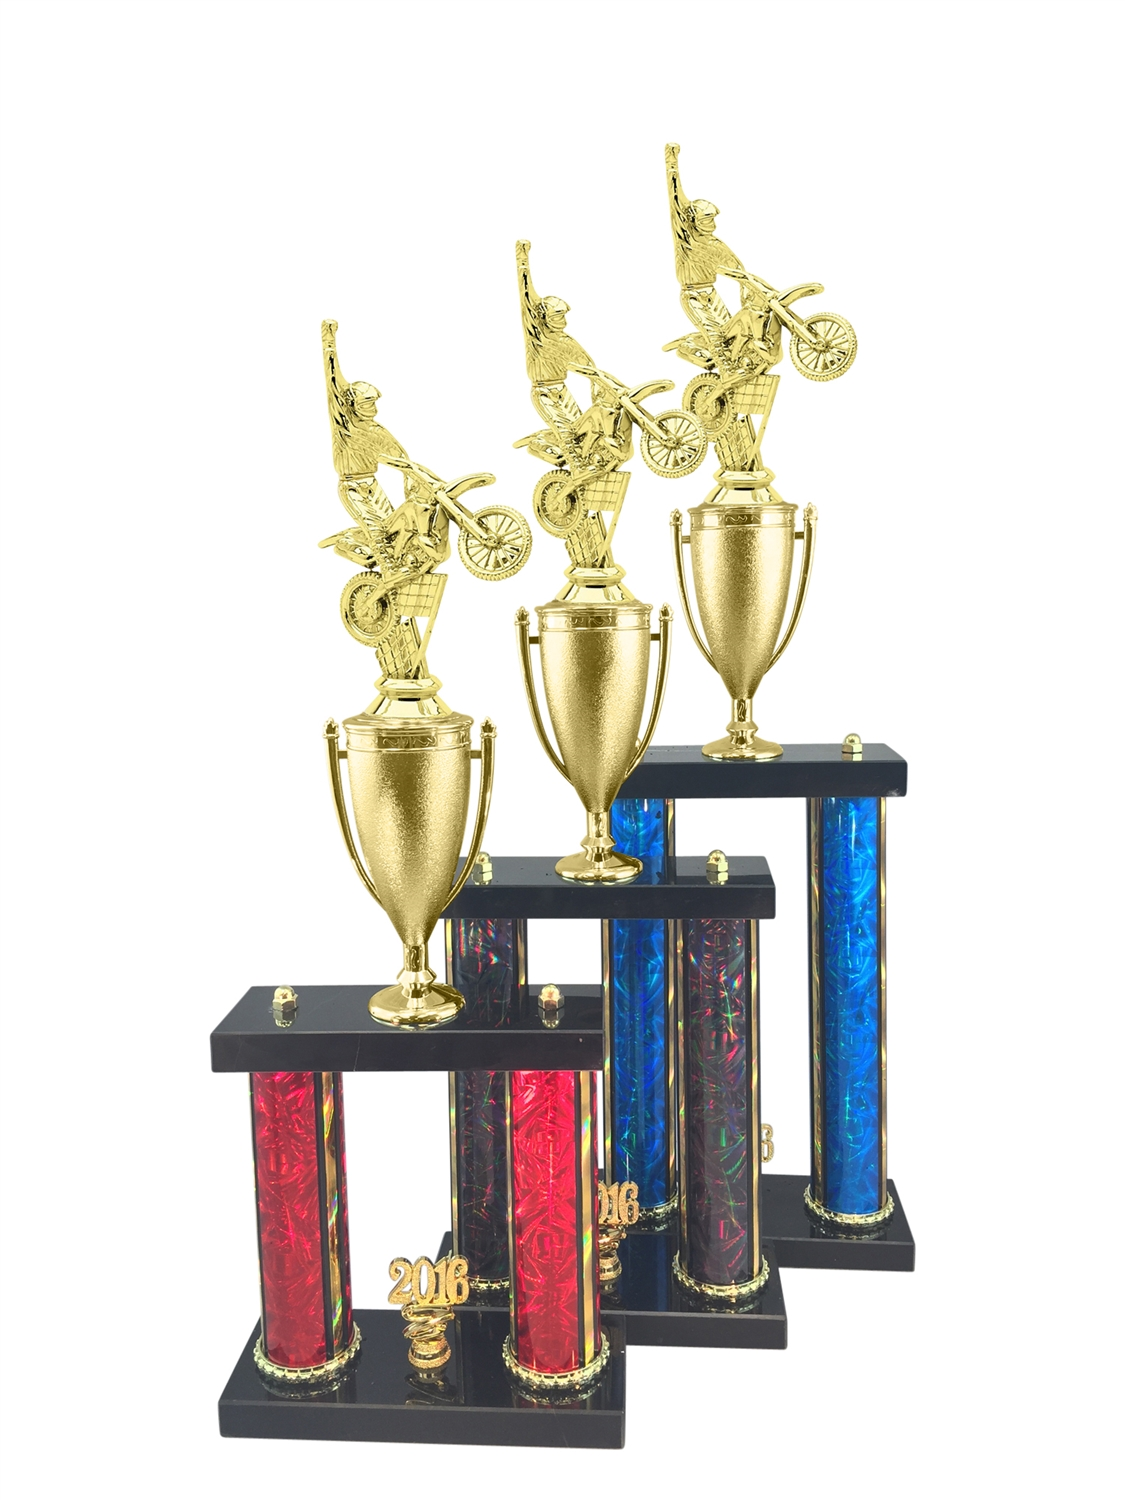 2 Post Motocross Trophy in 3 Sizes - in 11 Color & 3 Size Options